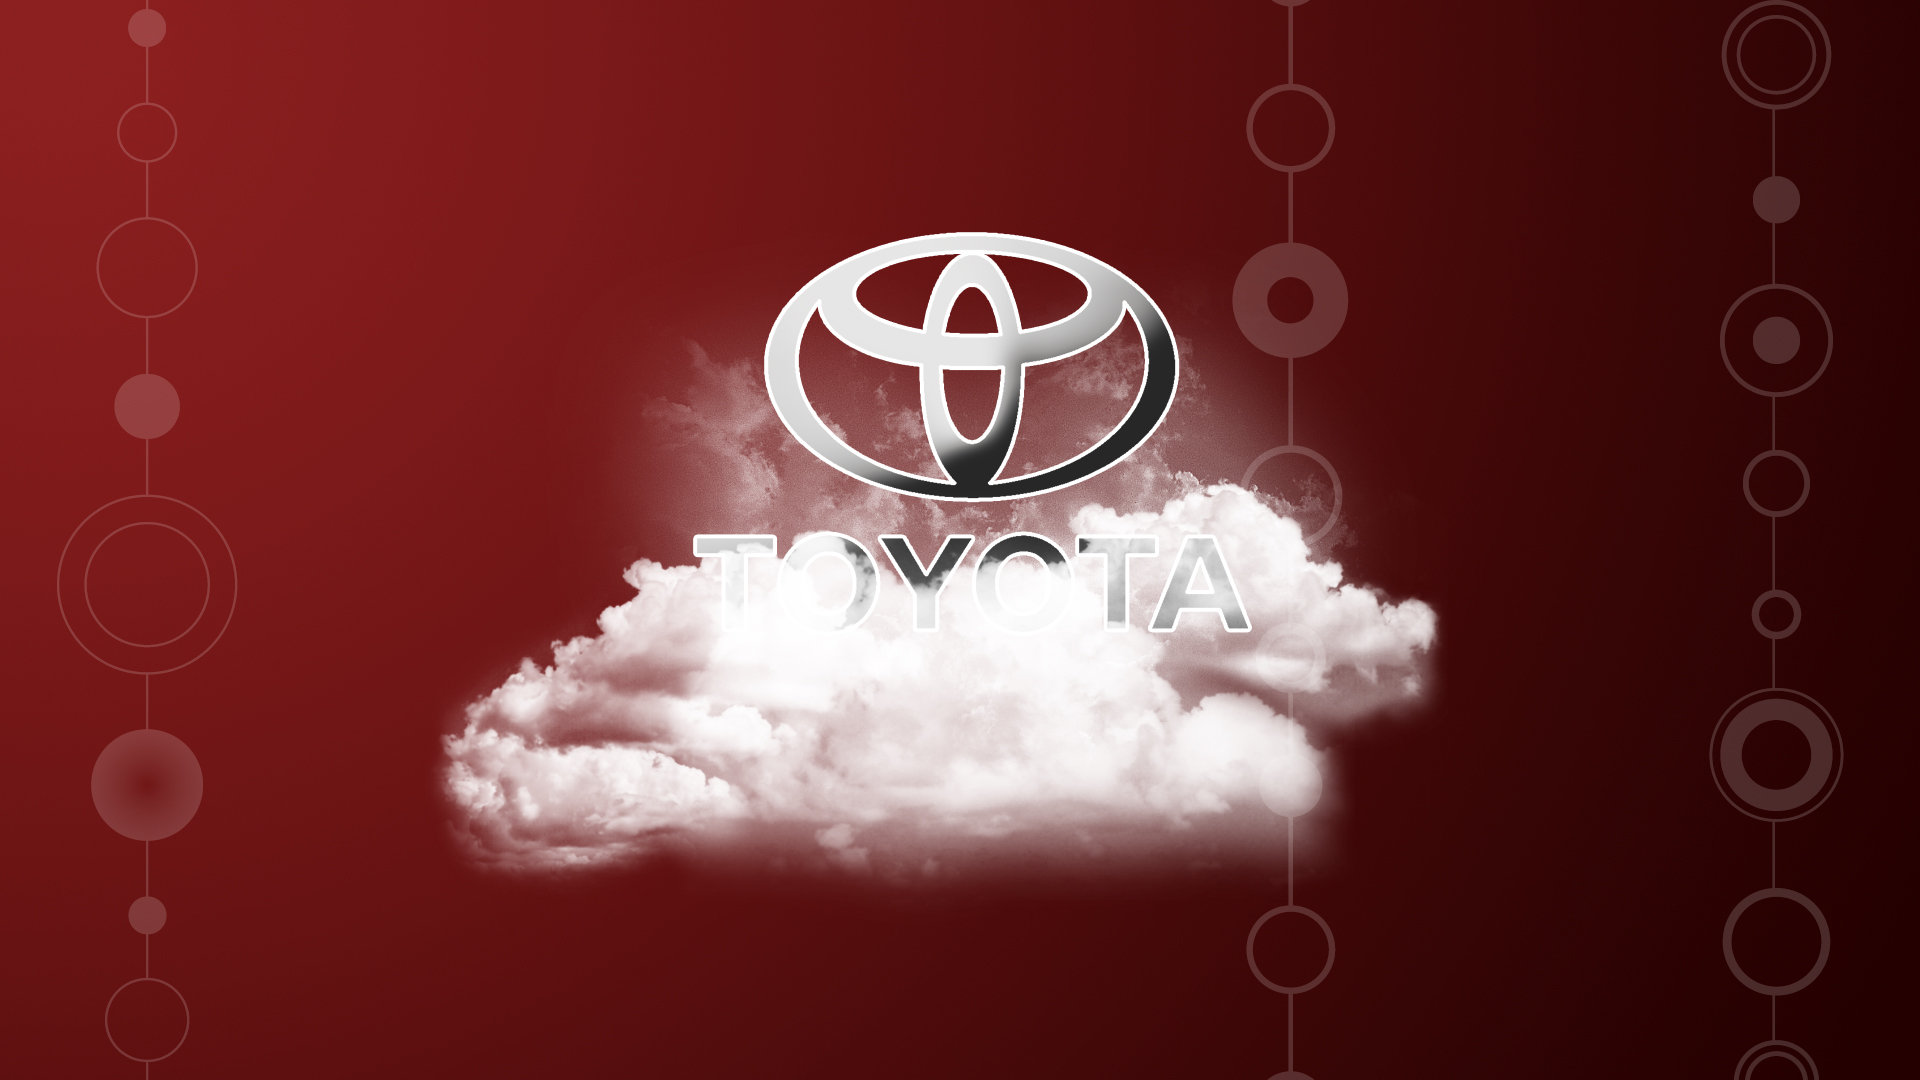 toyota hd wallpapers - photo #10